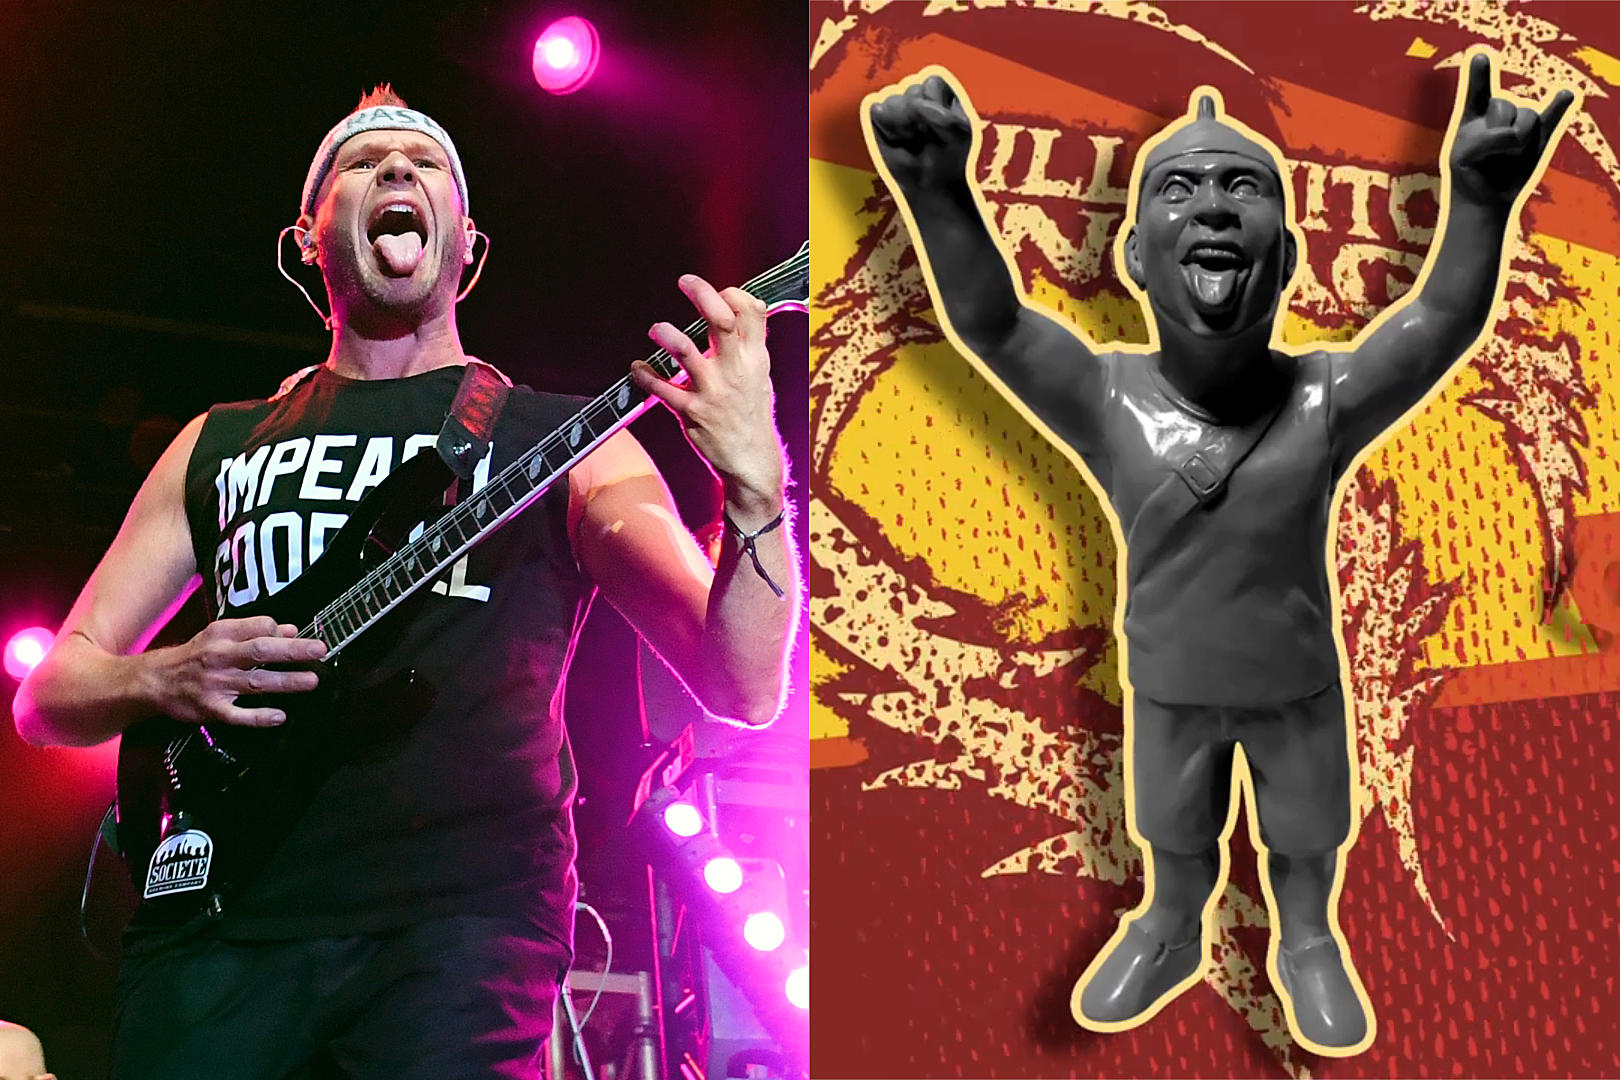 Killswitch Engage Guitarist To Be Immortalized With Toy Figurine